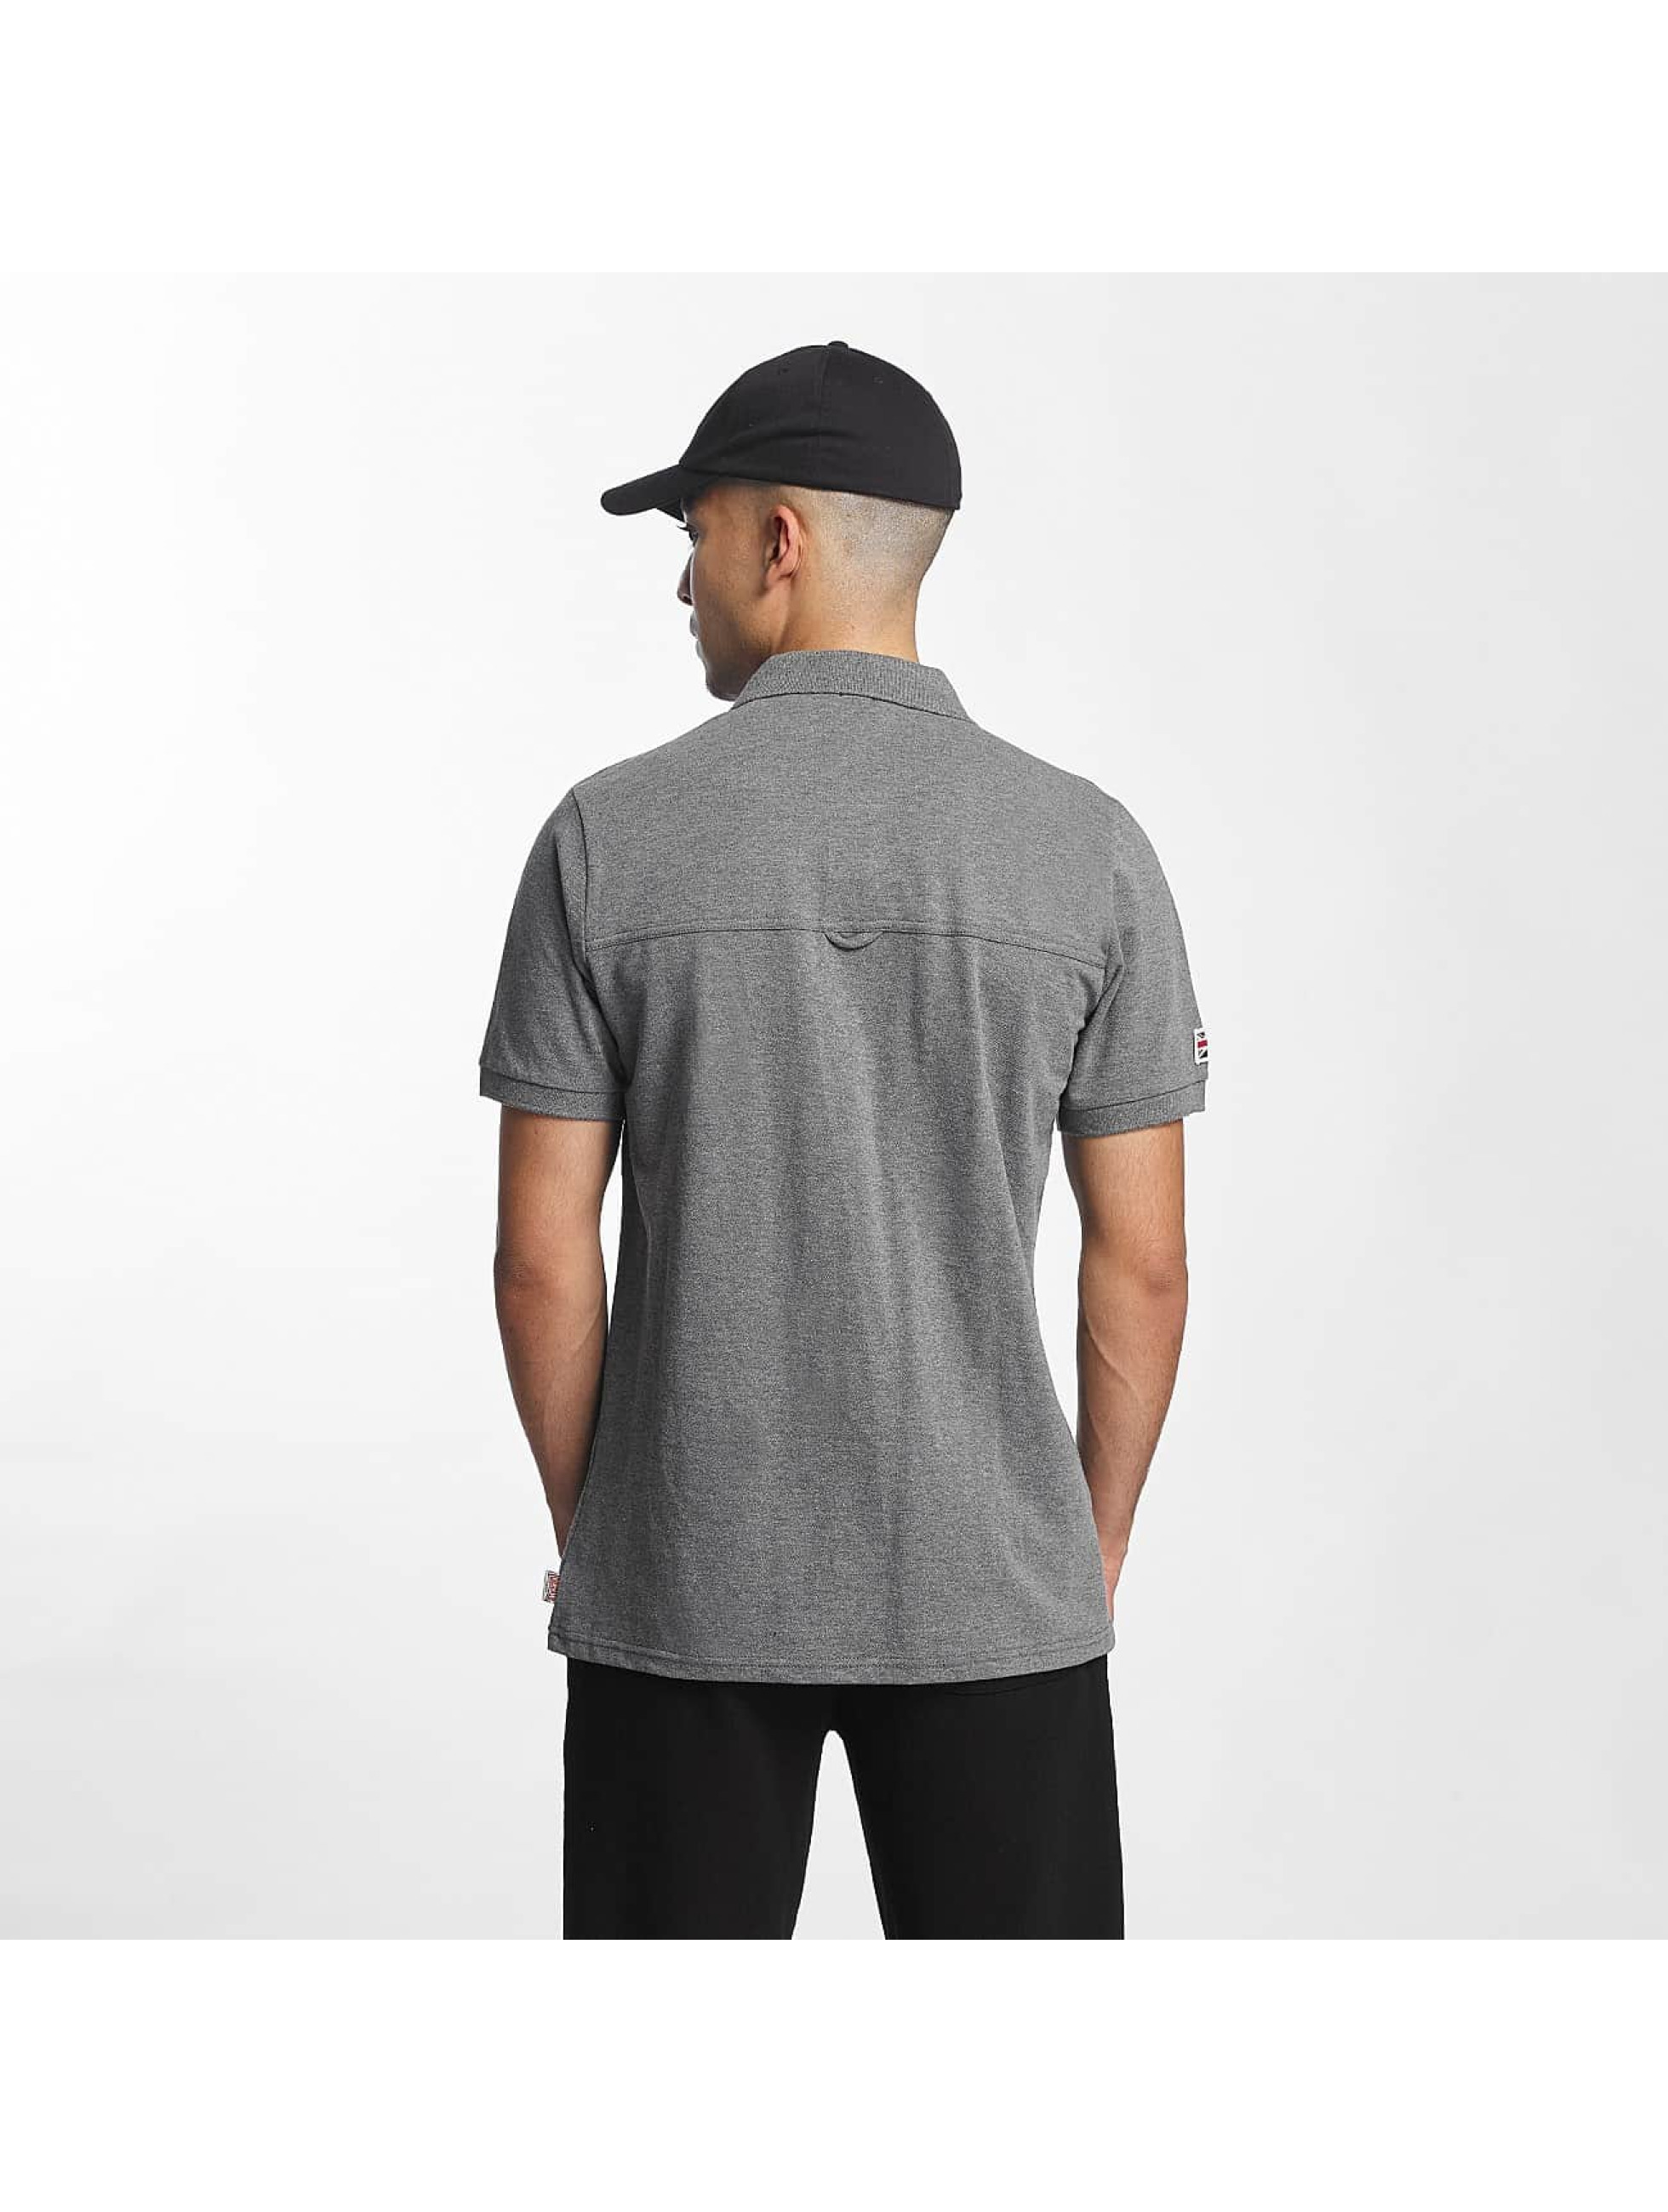 Lonsdale London Polo Dagenham Slim Fit gris